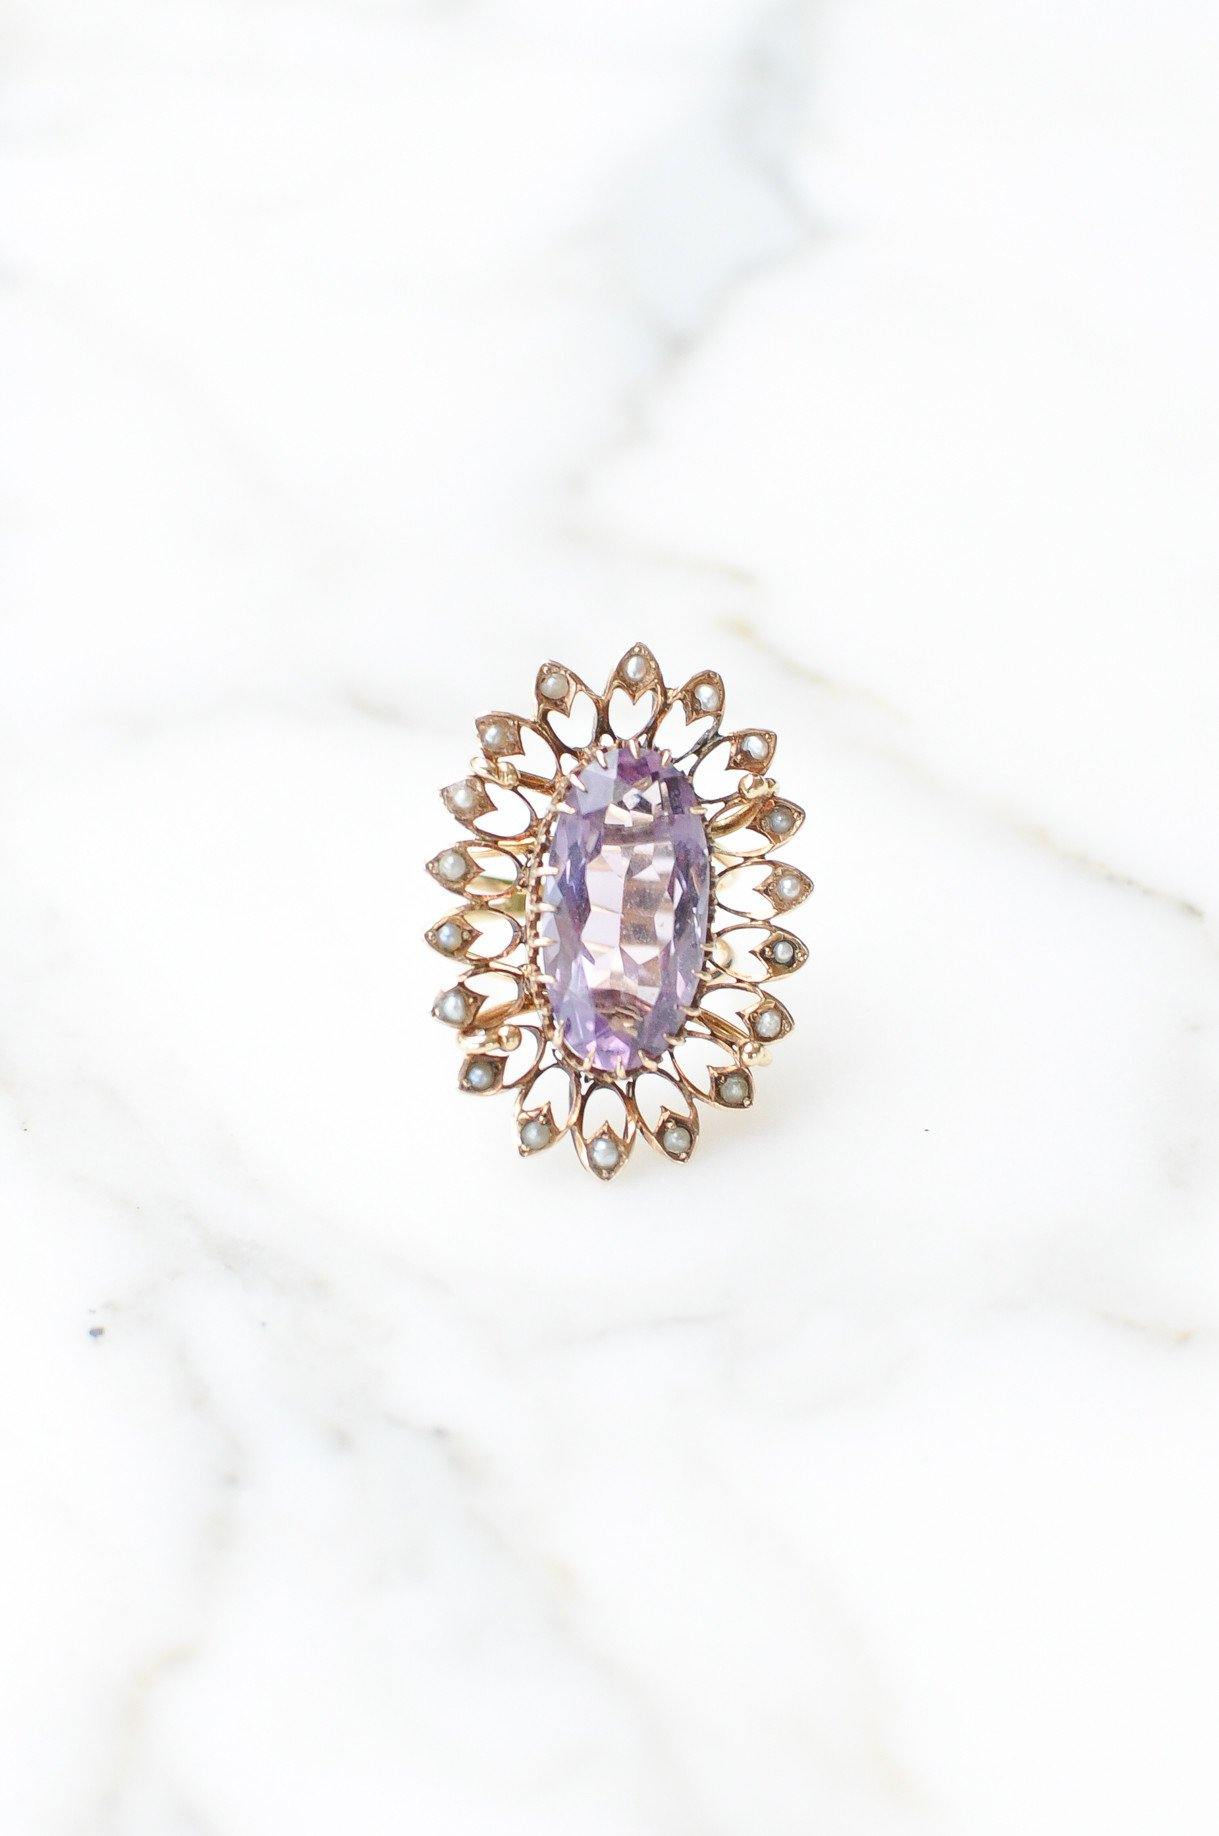 __Gold West Vintage__Amethyst and Seed Pearl Cocktail Ring